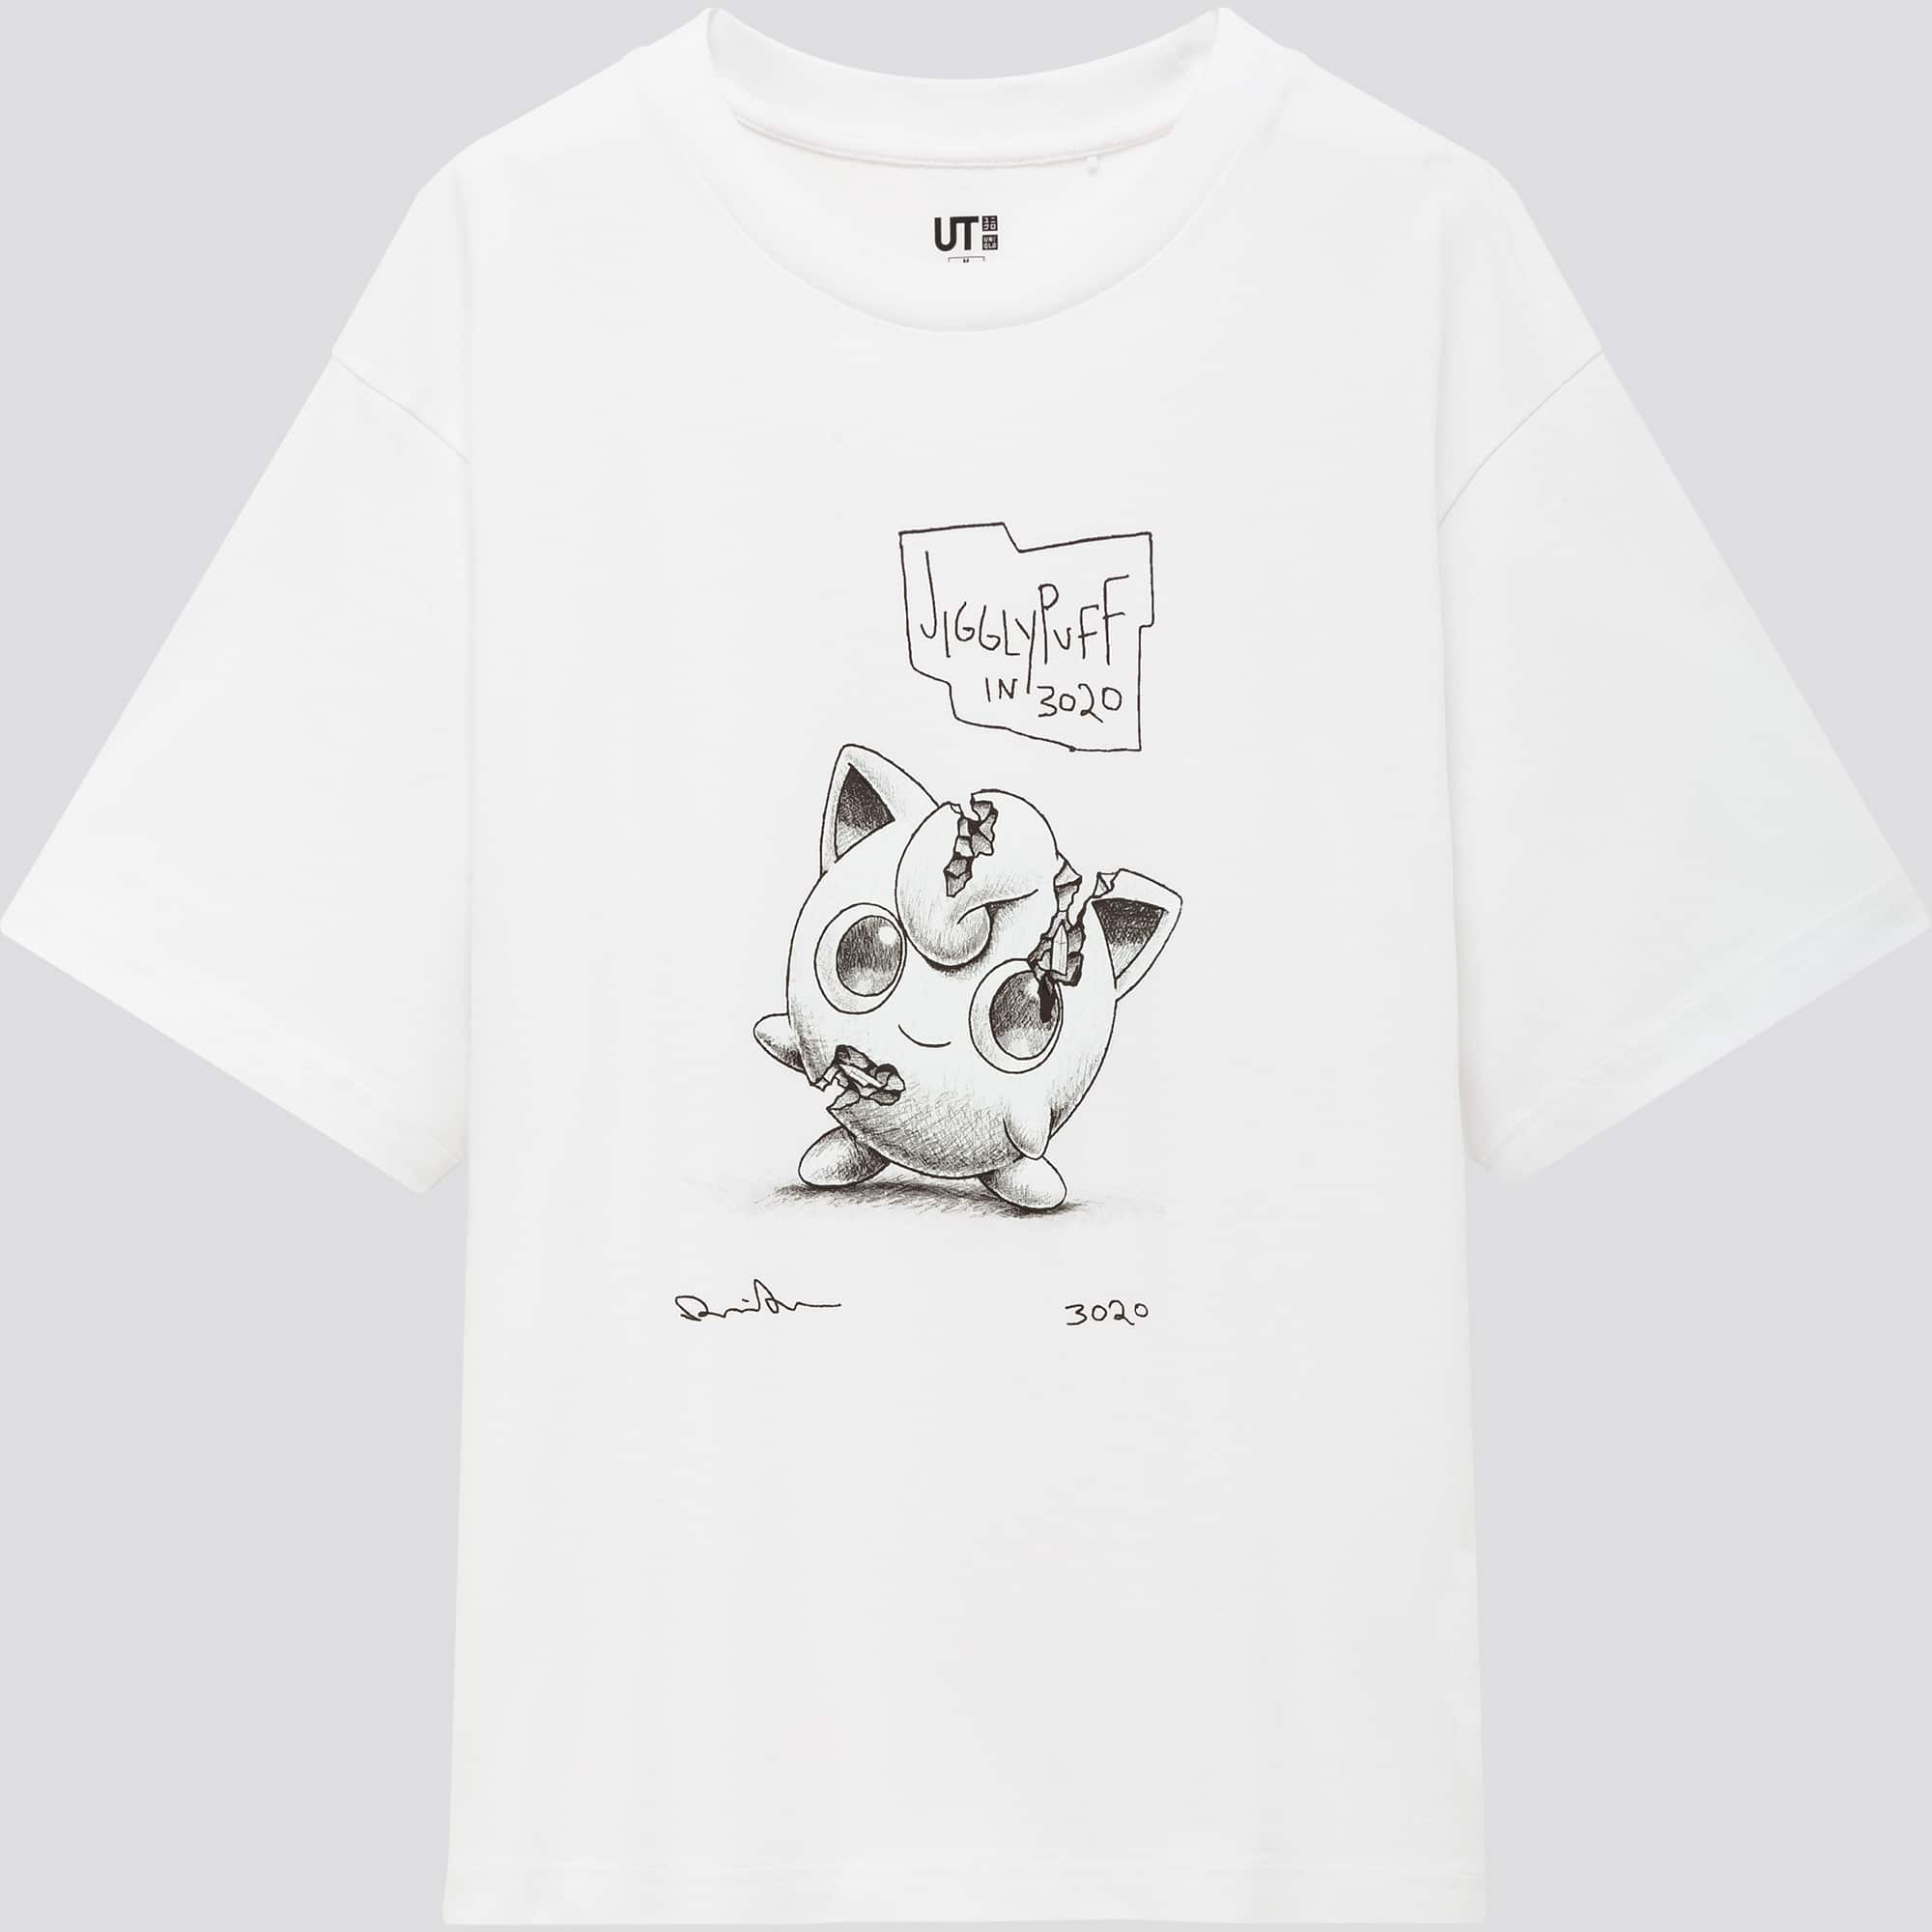 Uniqlo's Daniel Arsham x Pokémon t-shirts feature sketches of Pikachu, Mewtwo, & more 24